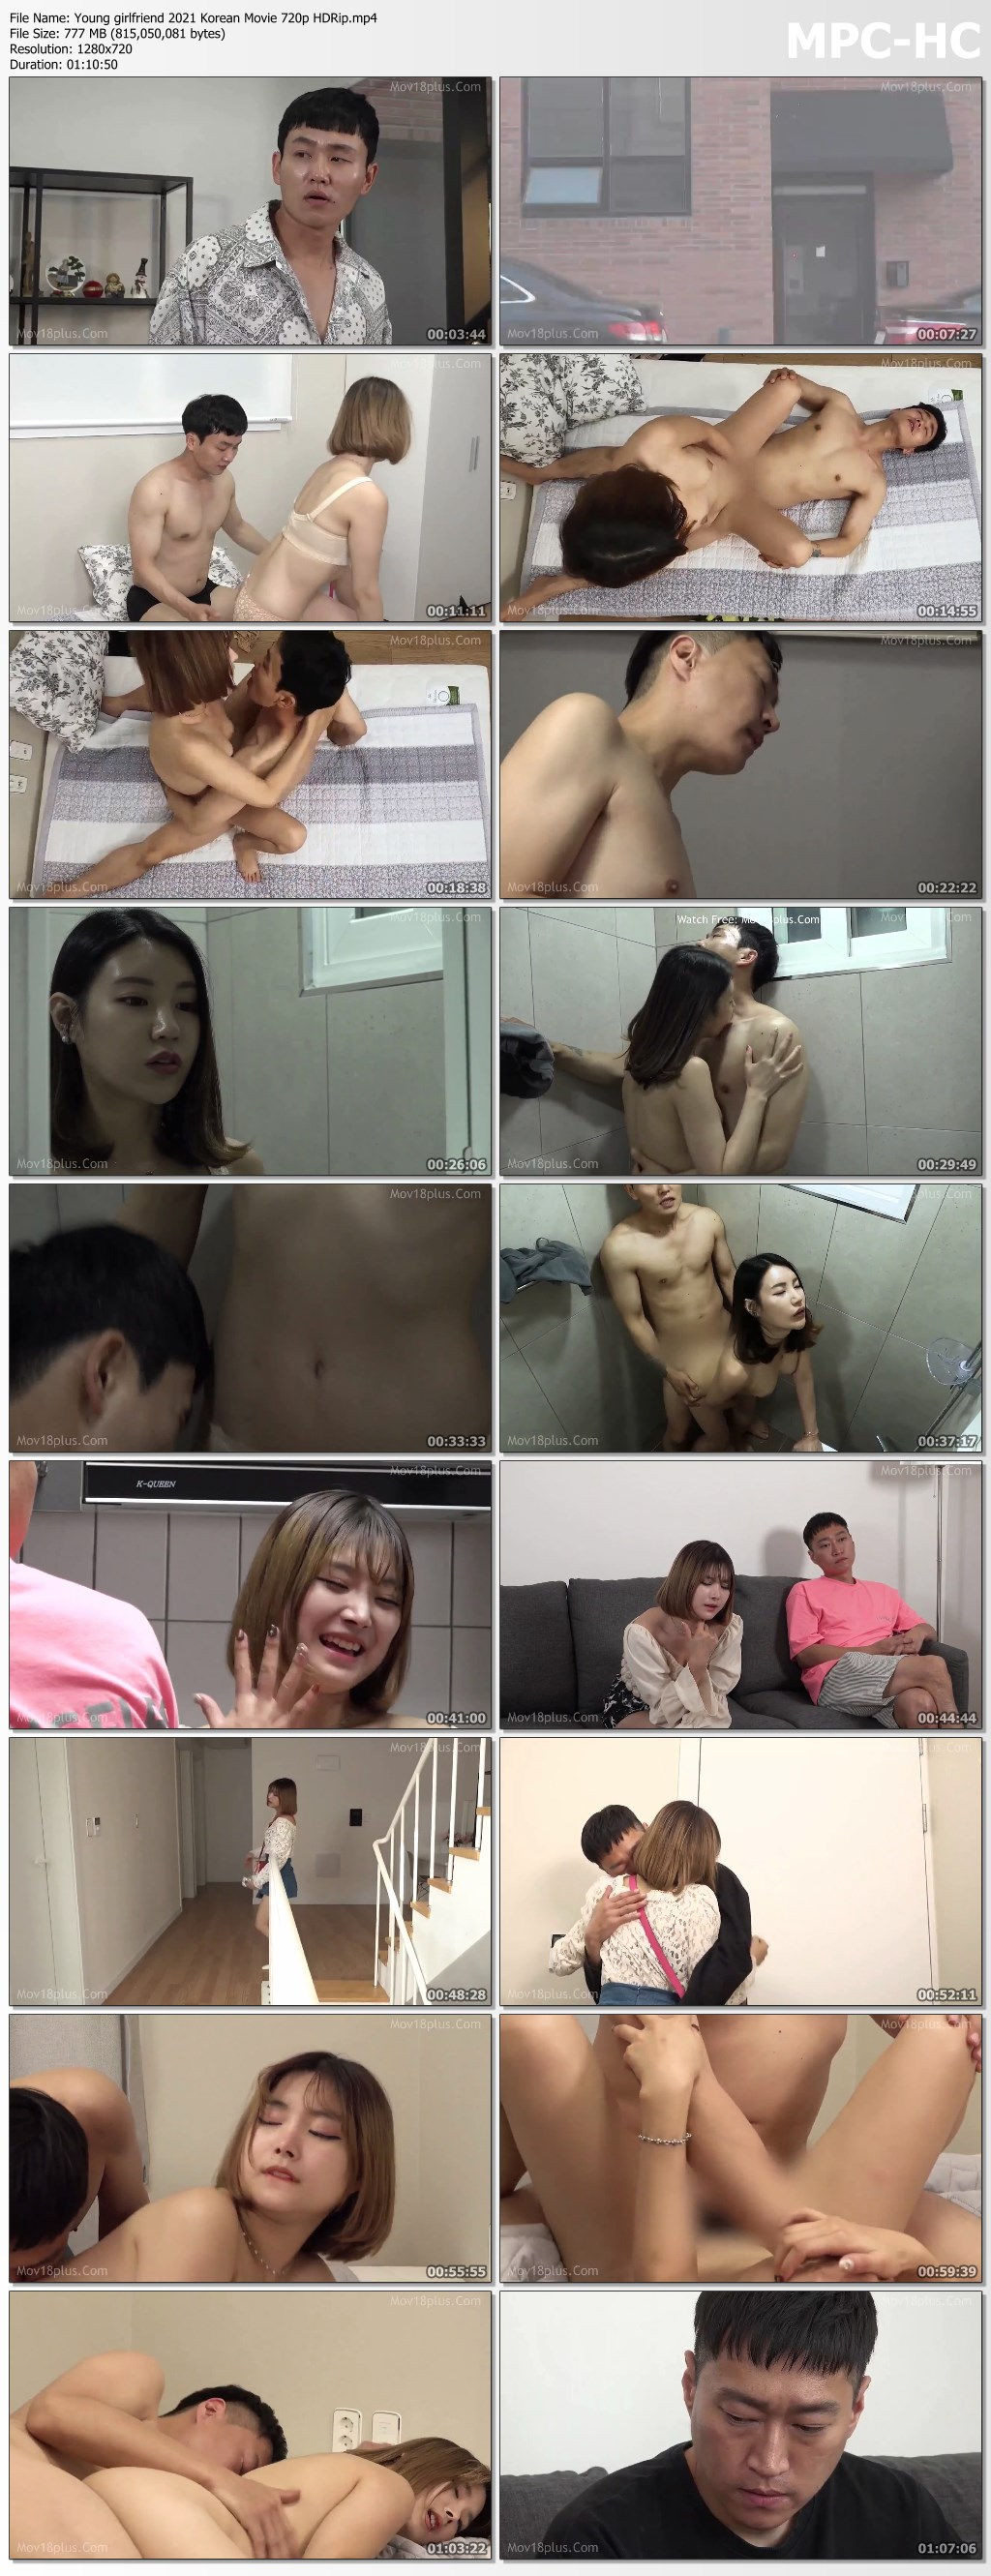 Young girlfriend 2021 Korean Movie 720p HDRip.mp4 thumbs